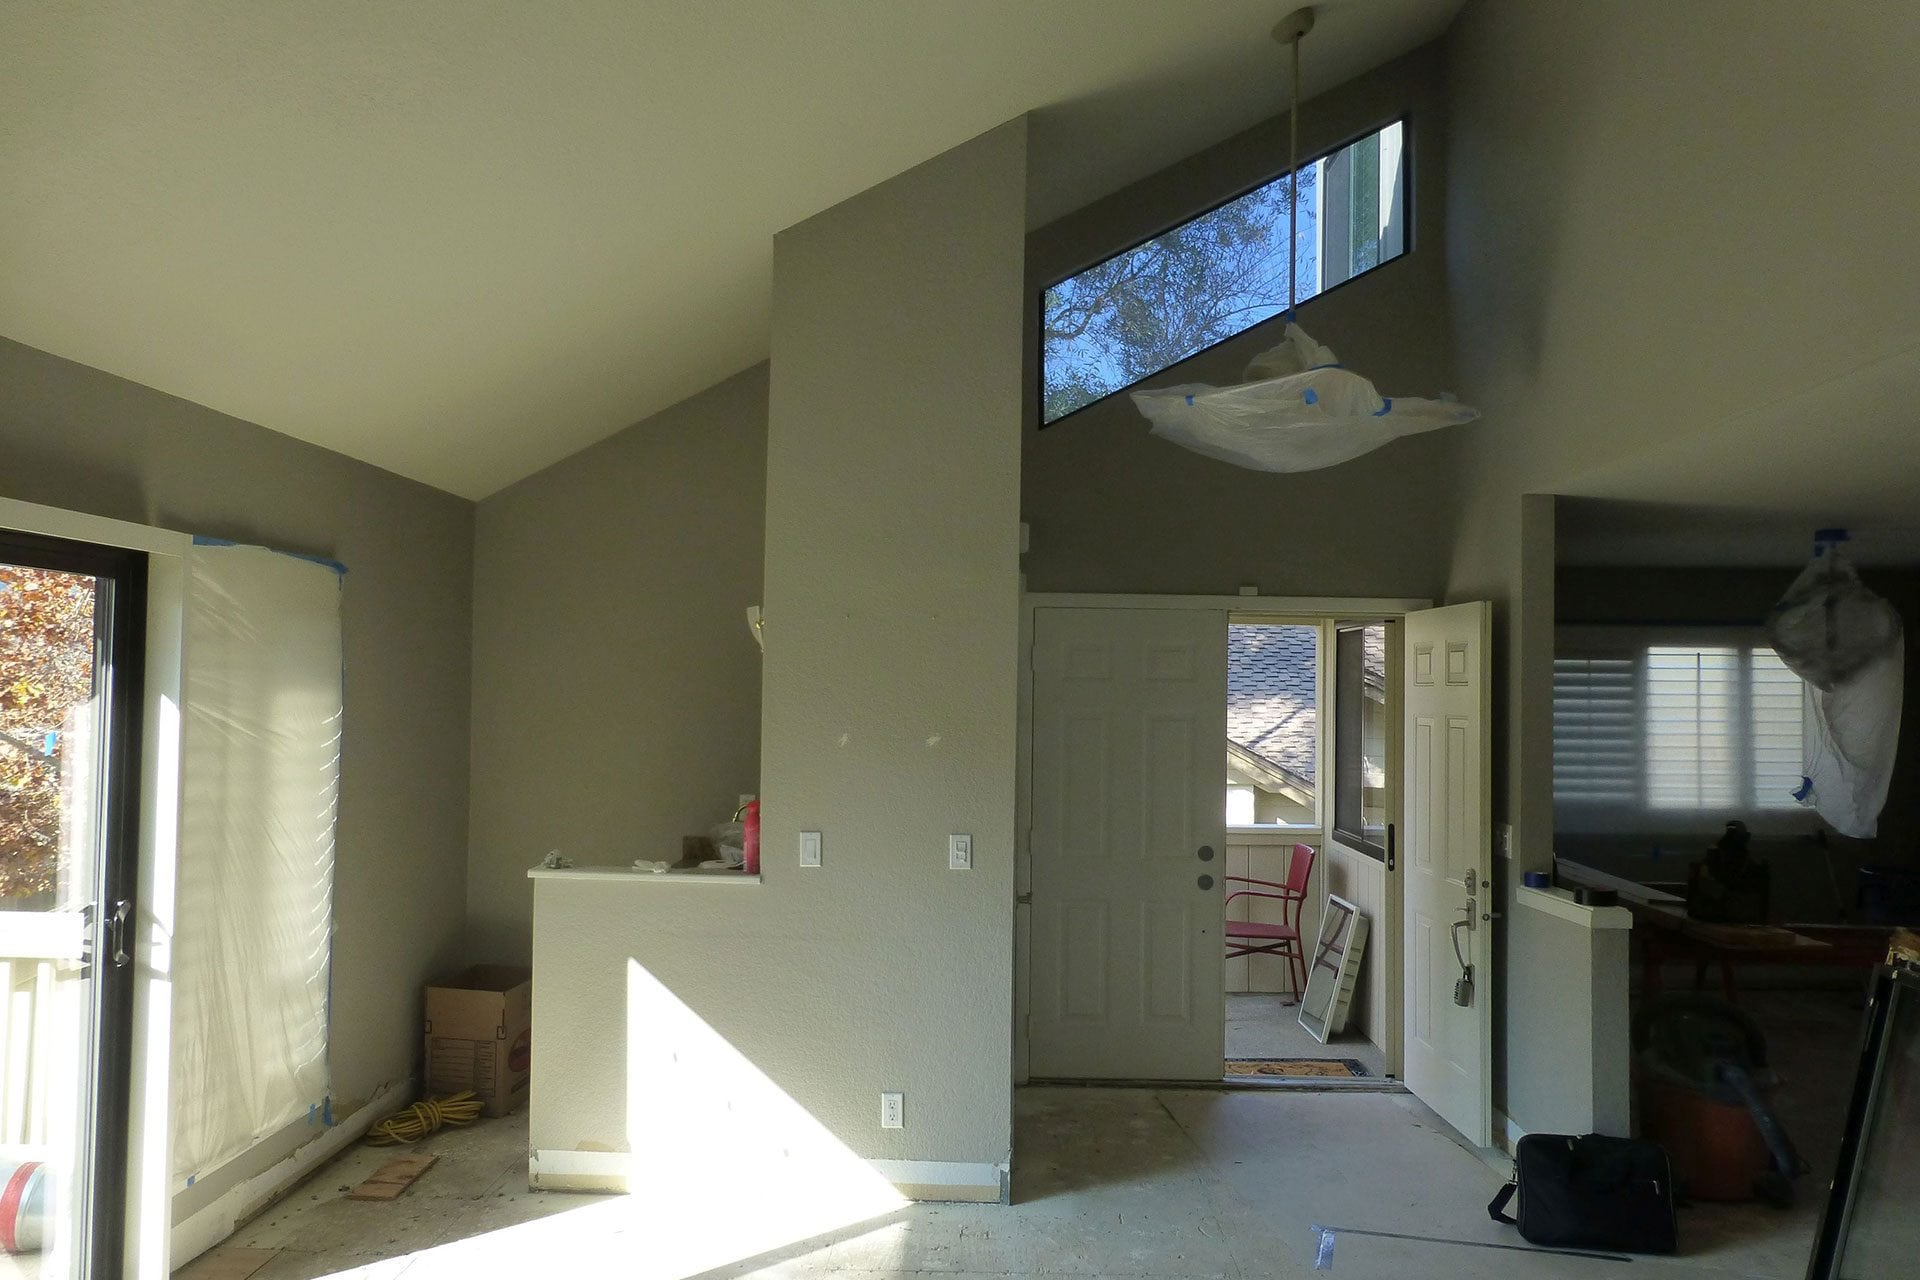 Townhouse before being completely made-over by Gordon Reese Construction